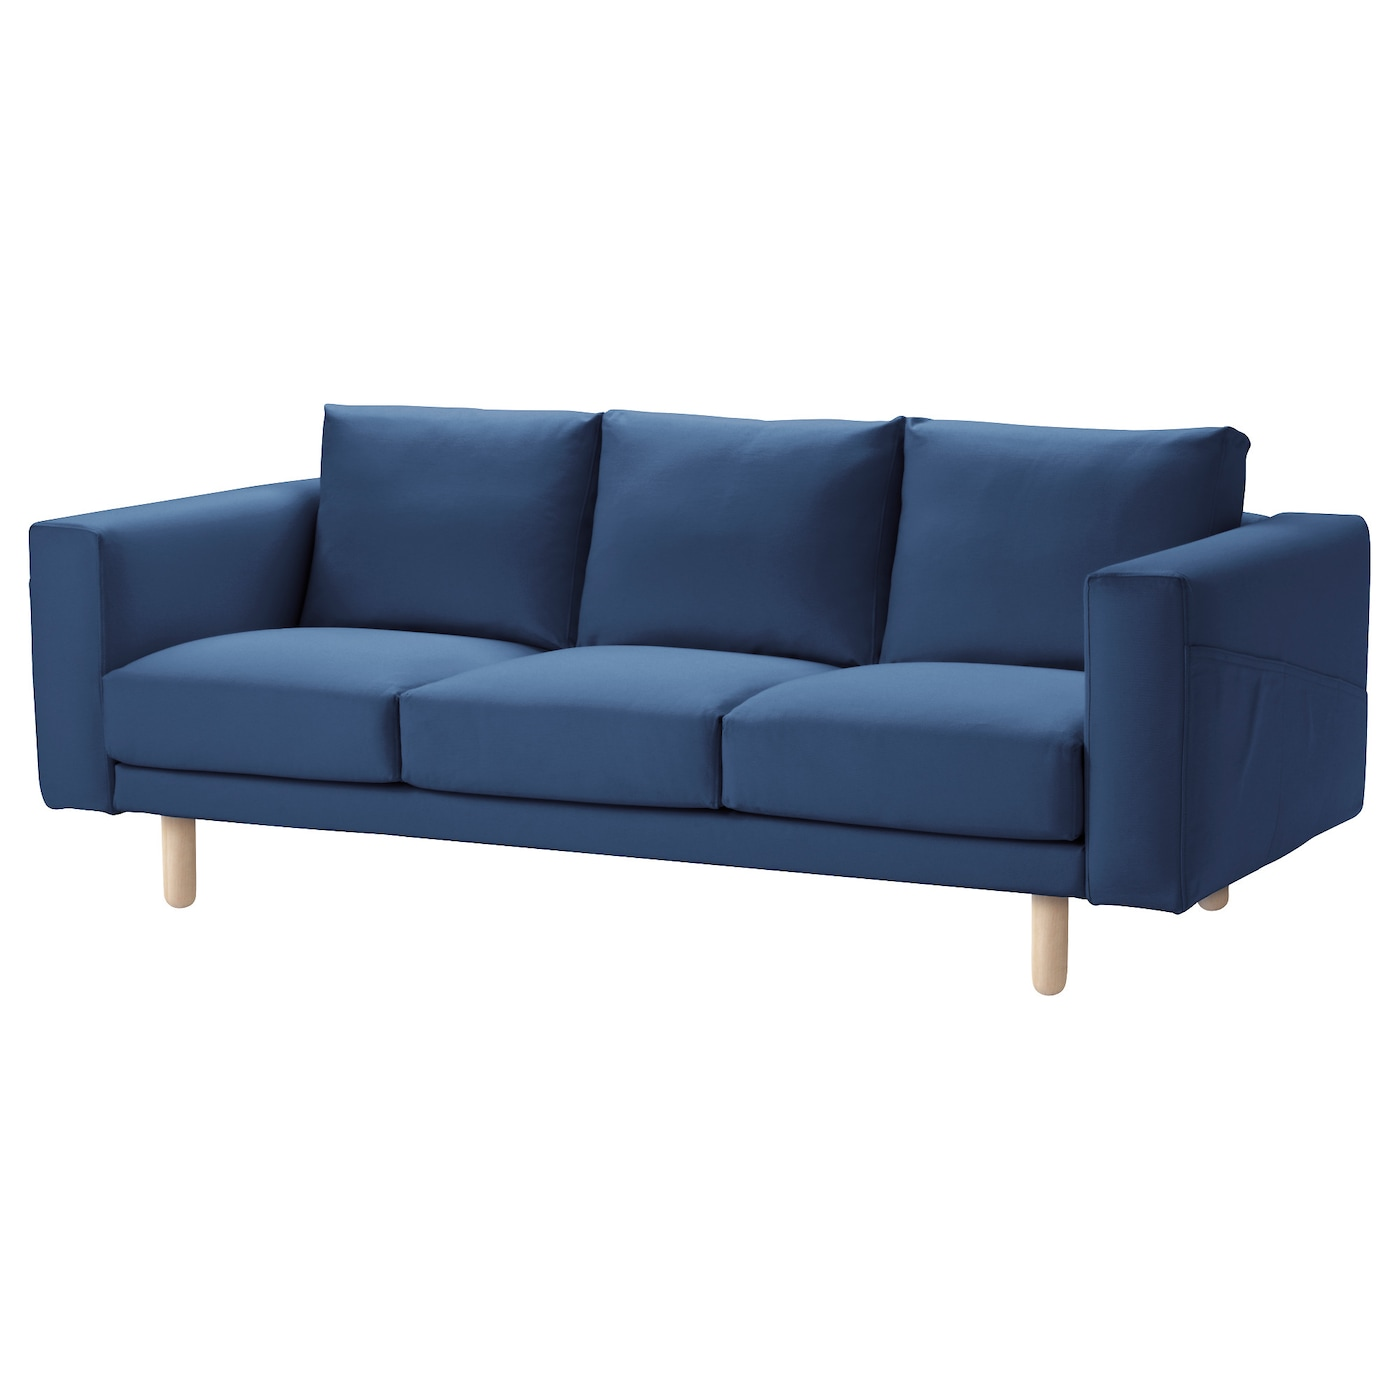 Norsborg Three Seat Sofa Gr Sbo Dark Blue Birch Ikea